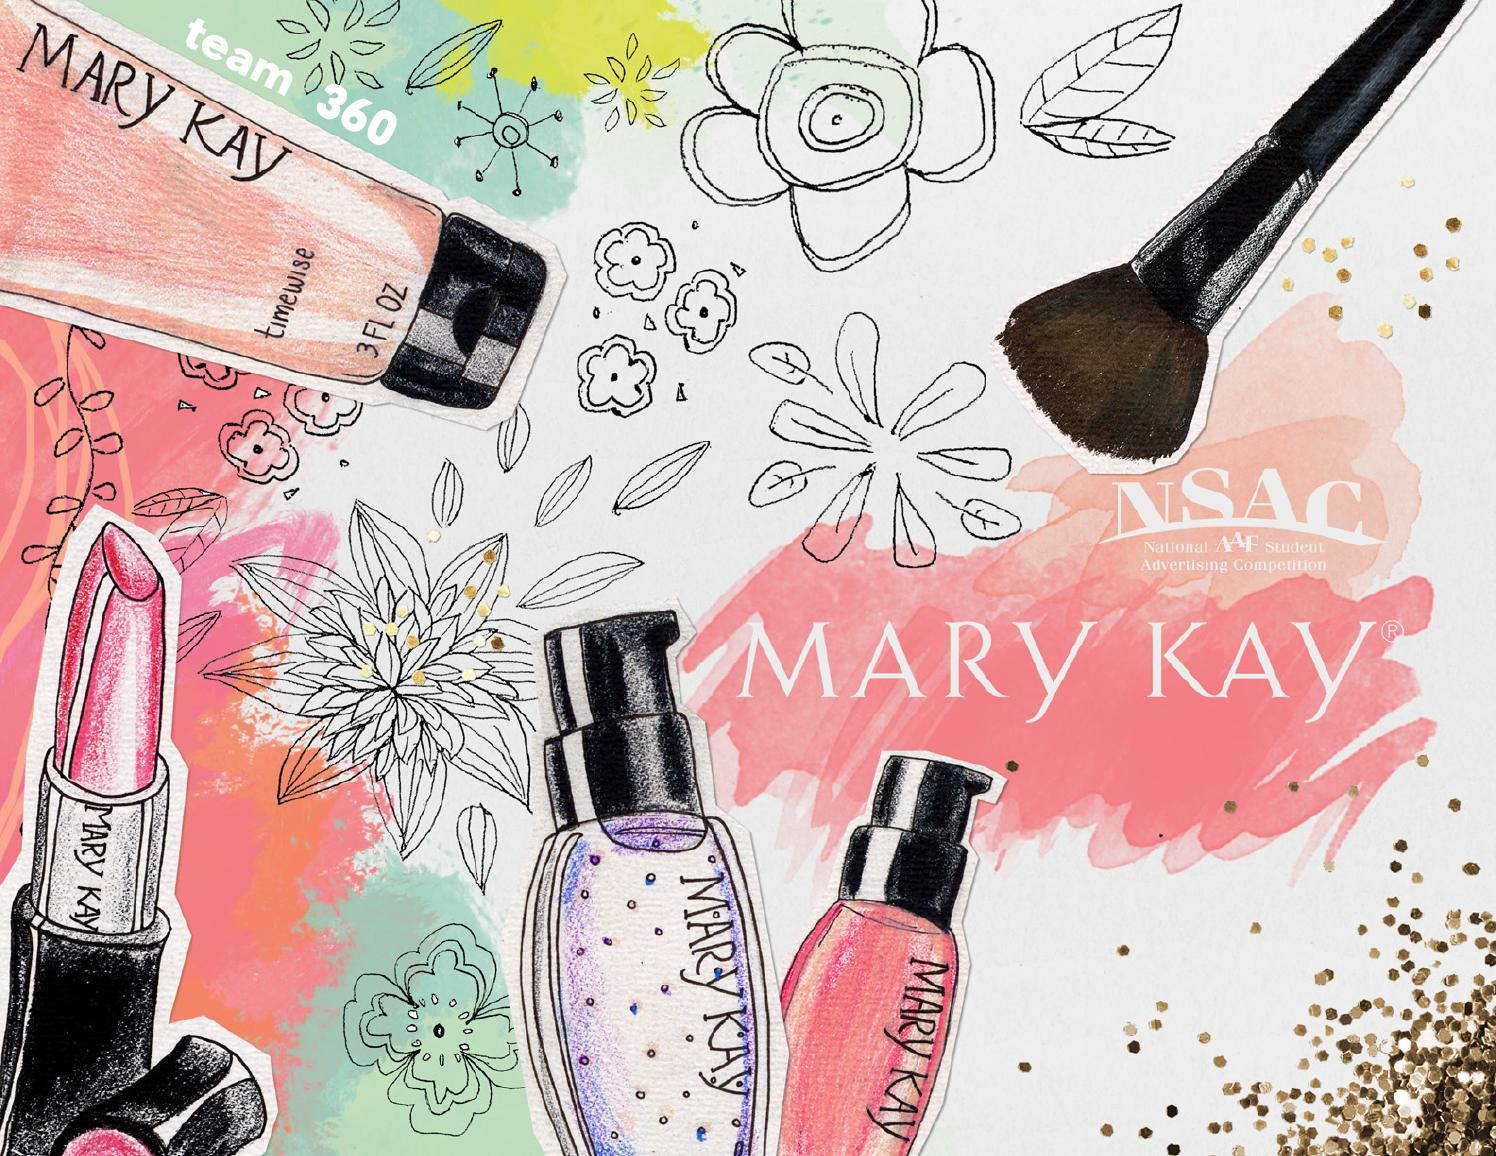 Mary Kay Advertising Campaign Mary kay cosmetics, Mary